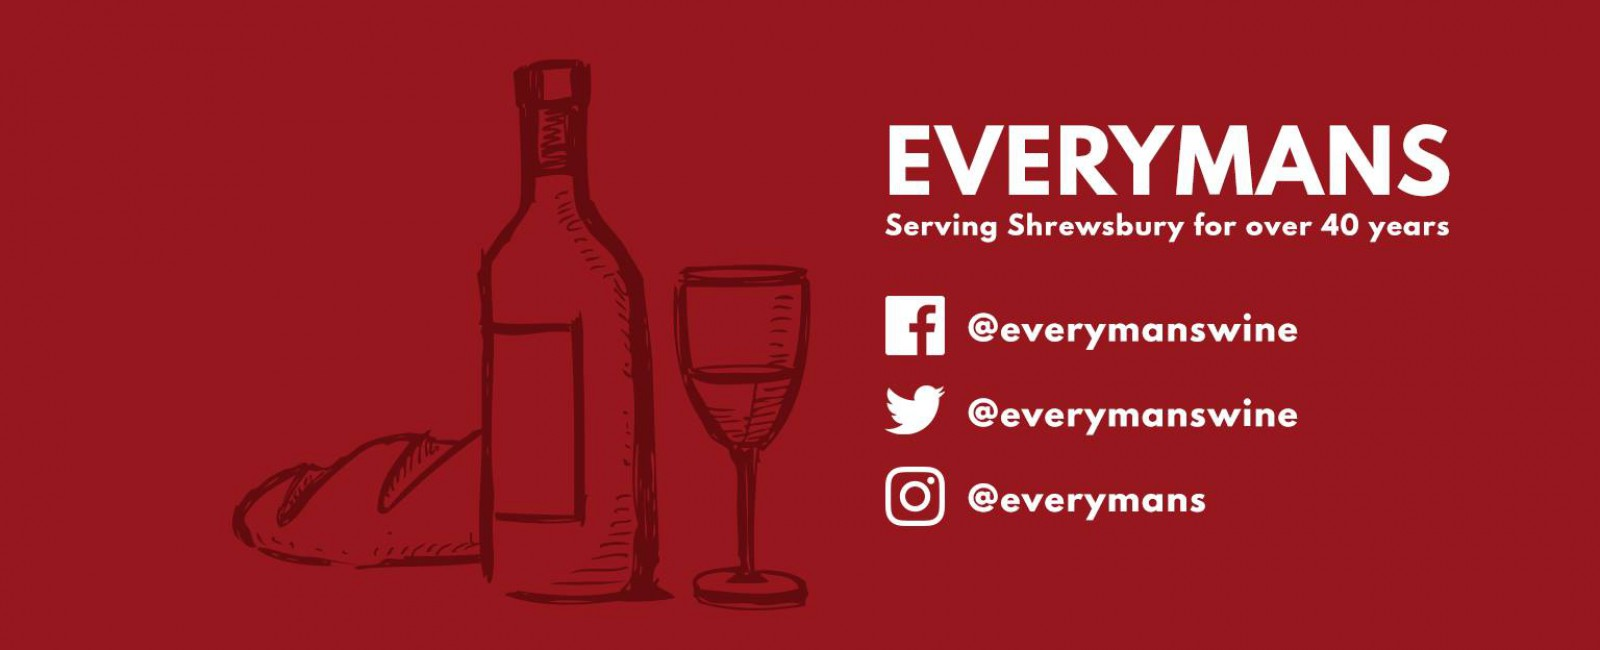 Everymans Wine